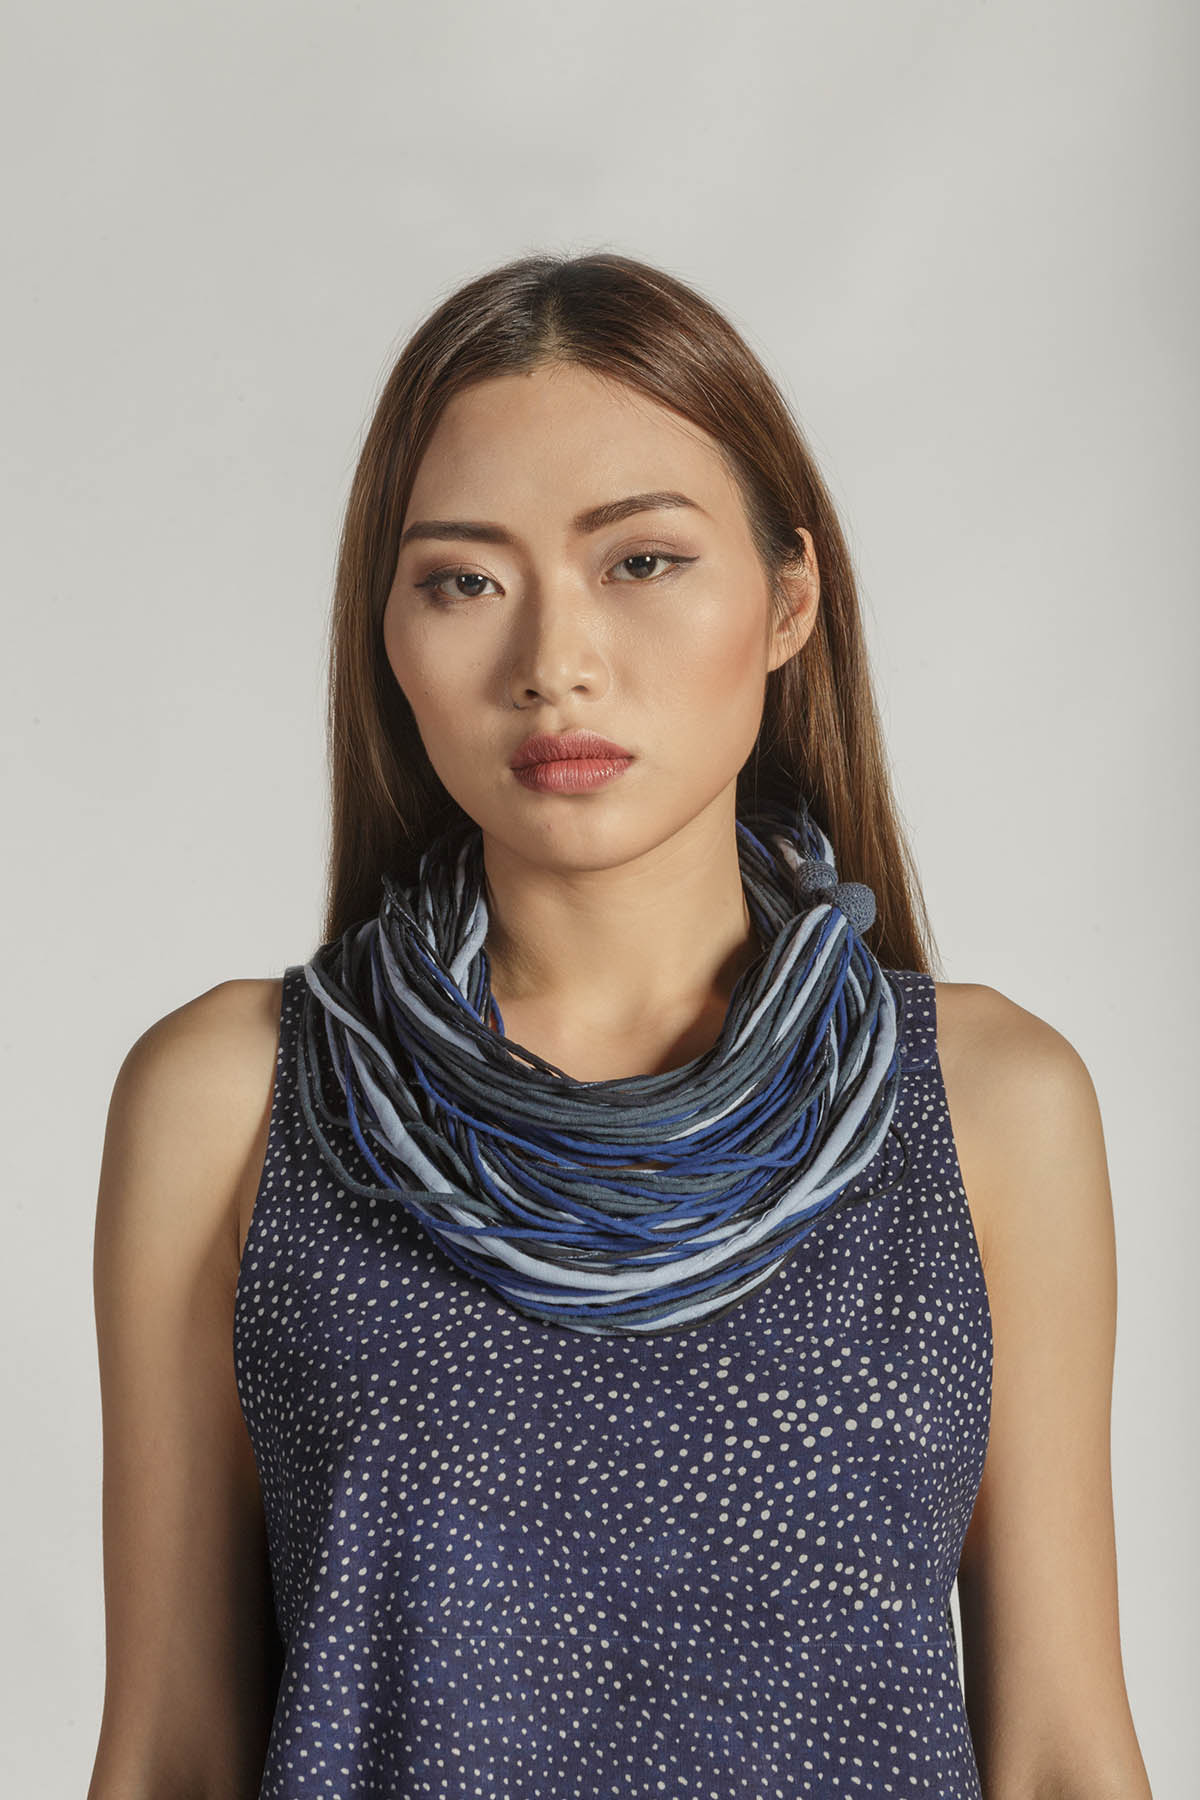 This is a Twist necklace by Kilomet 109 - Phieu Collection 2017